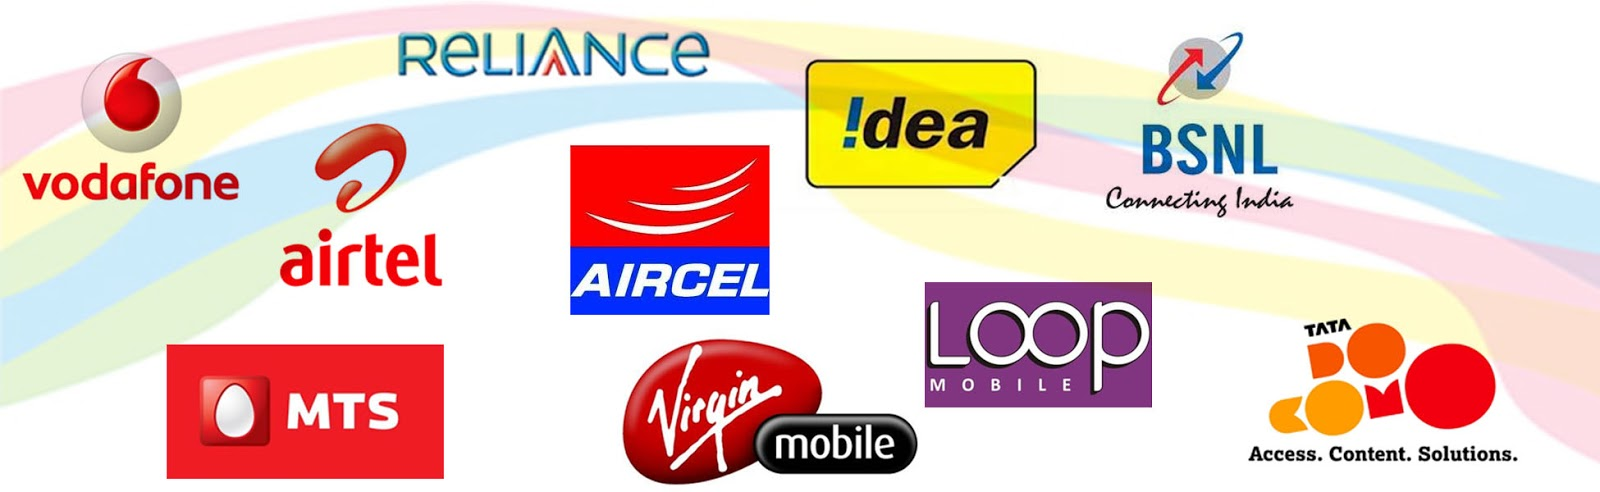 Online mobile recharge discount coupons